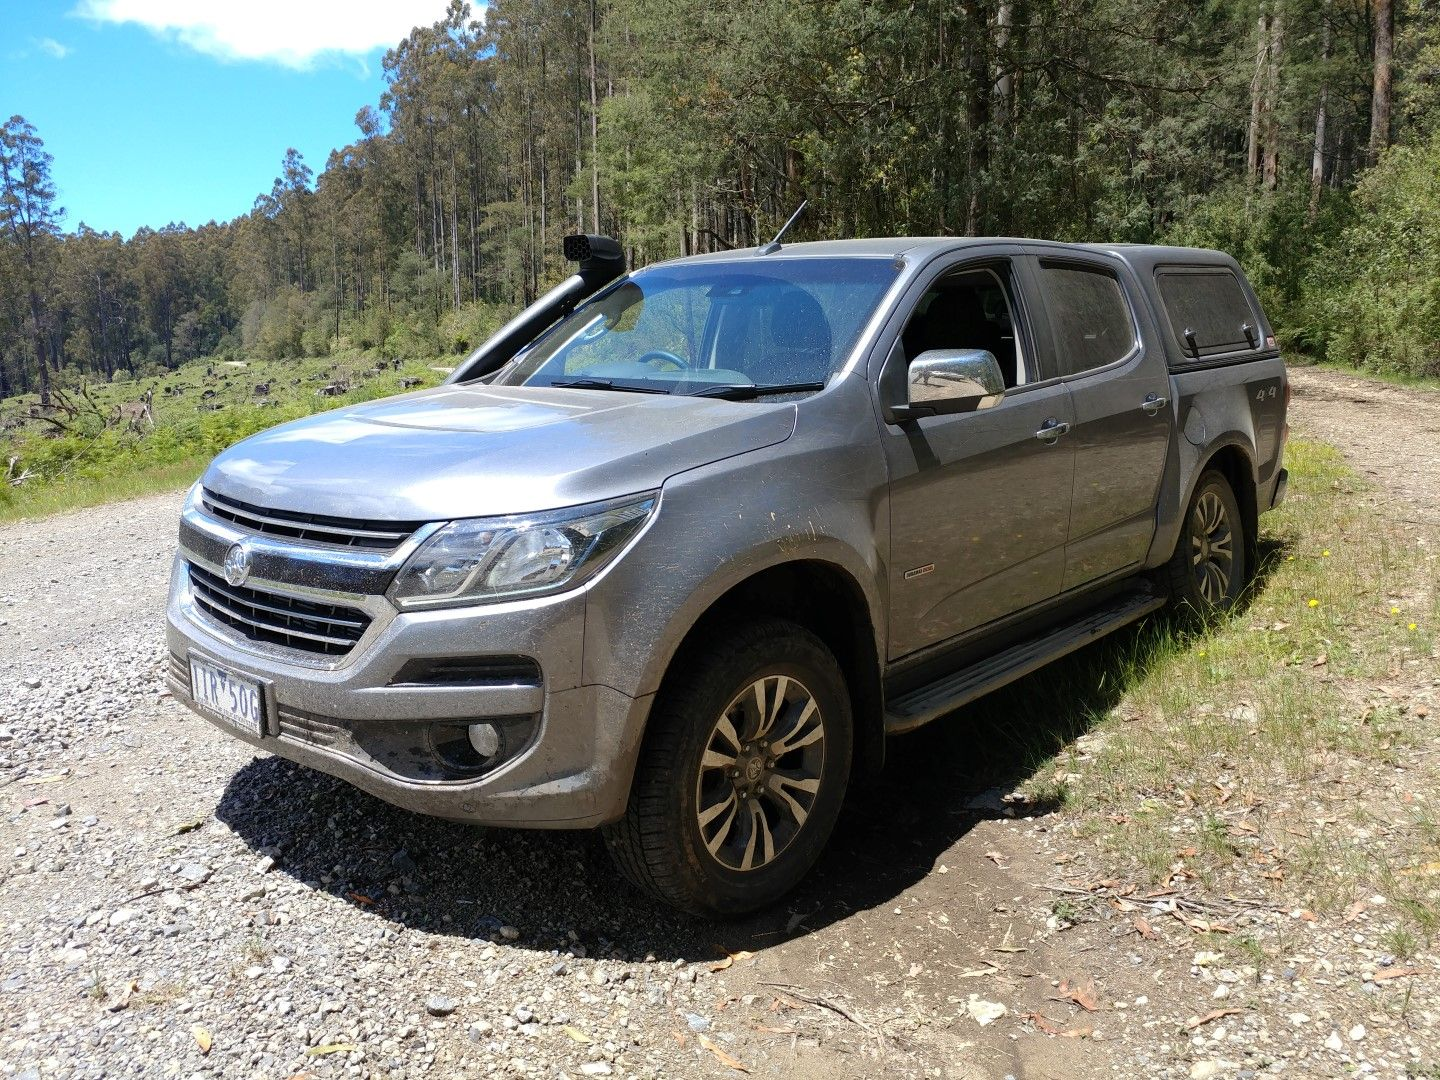 MY17 Holden Colorado ARB Canopy - @4x4_photos & MY17 Holden Colorado ARB Canopy - @4x4_photos | Holden Colorado ...